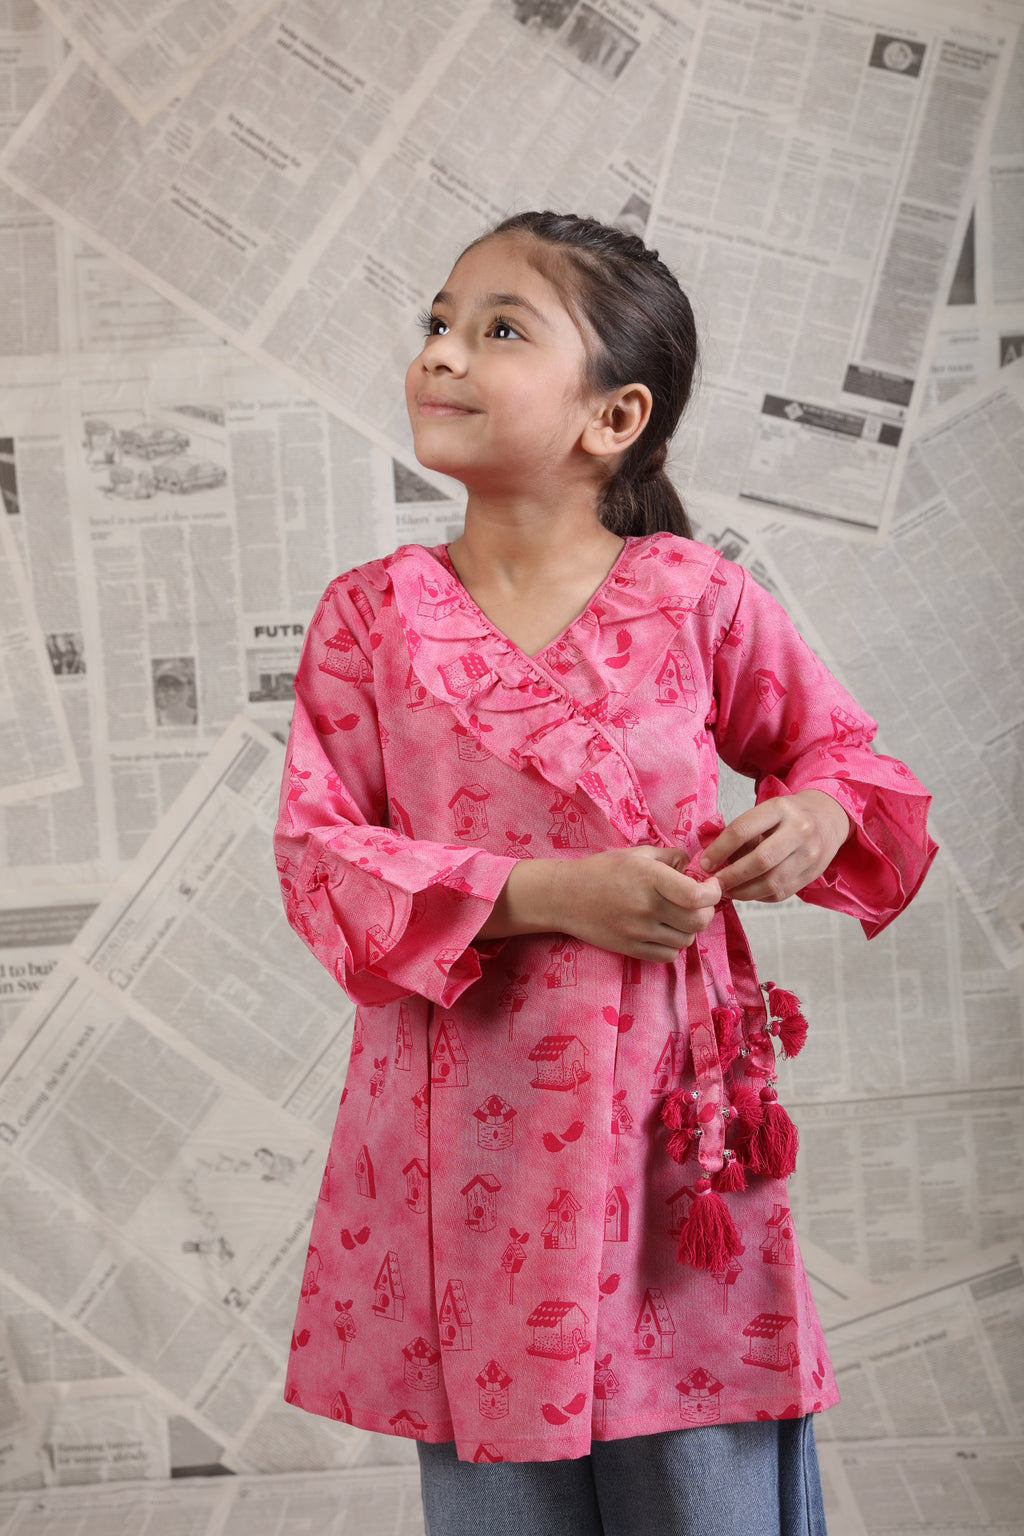 KAA-01622 | Shocking Pink | Casual Kurta | Cotton Denim Print